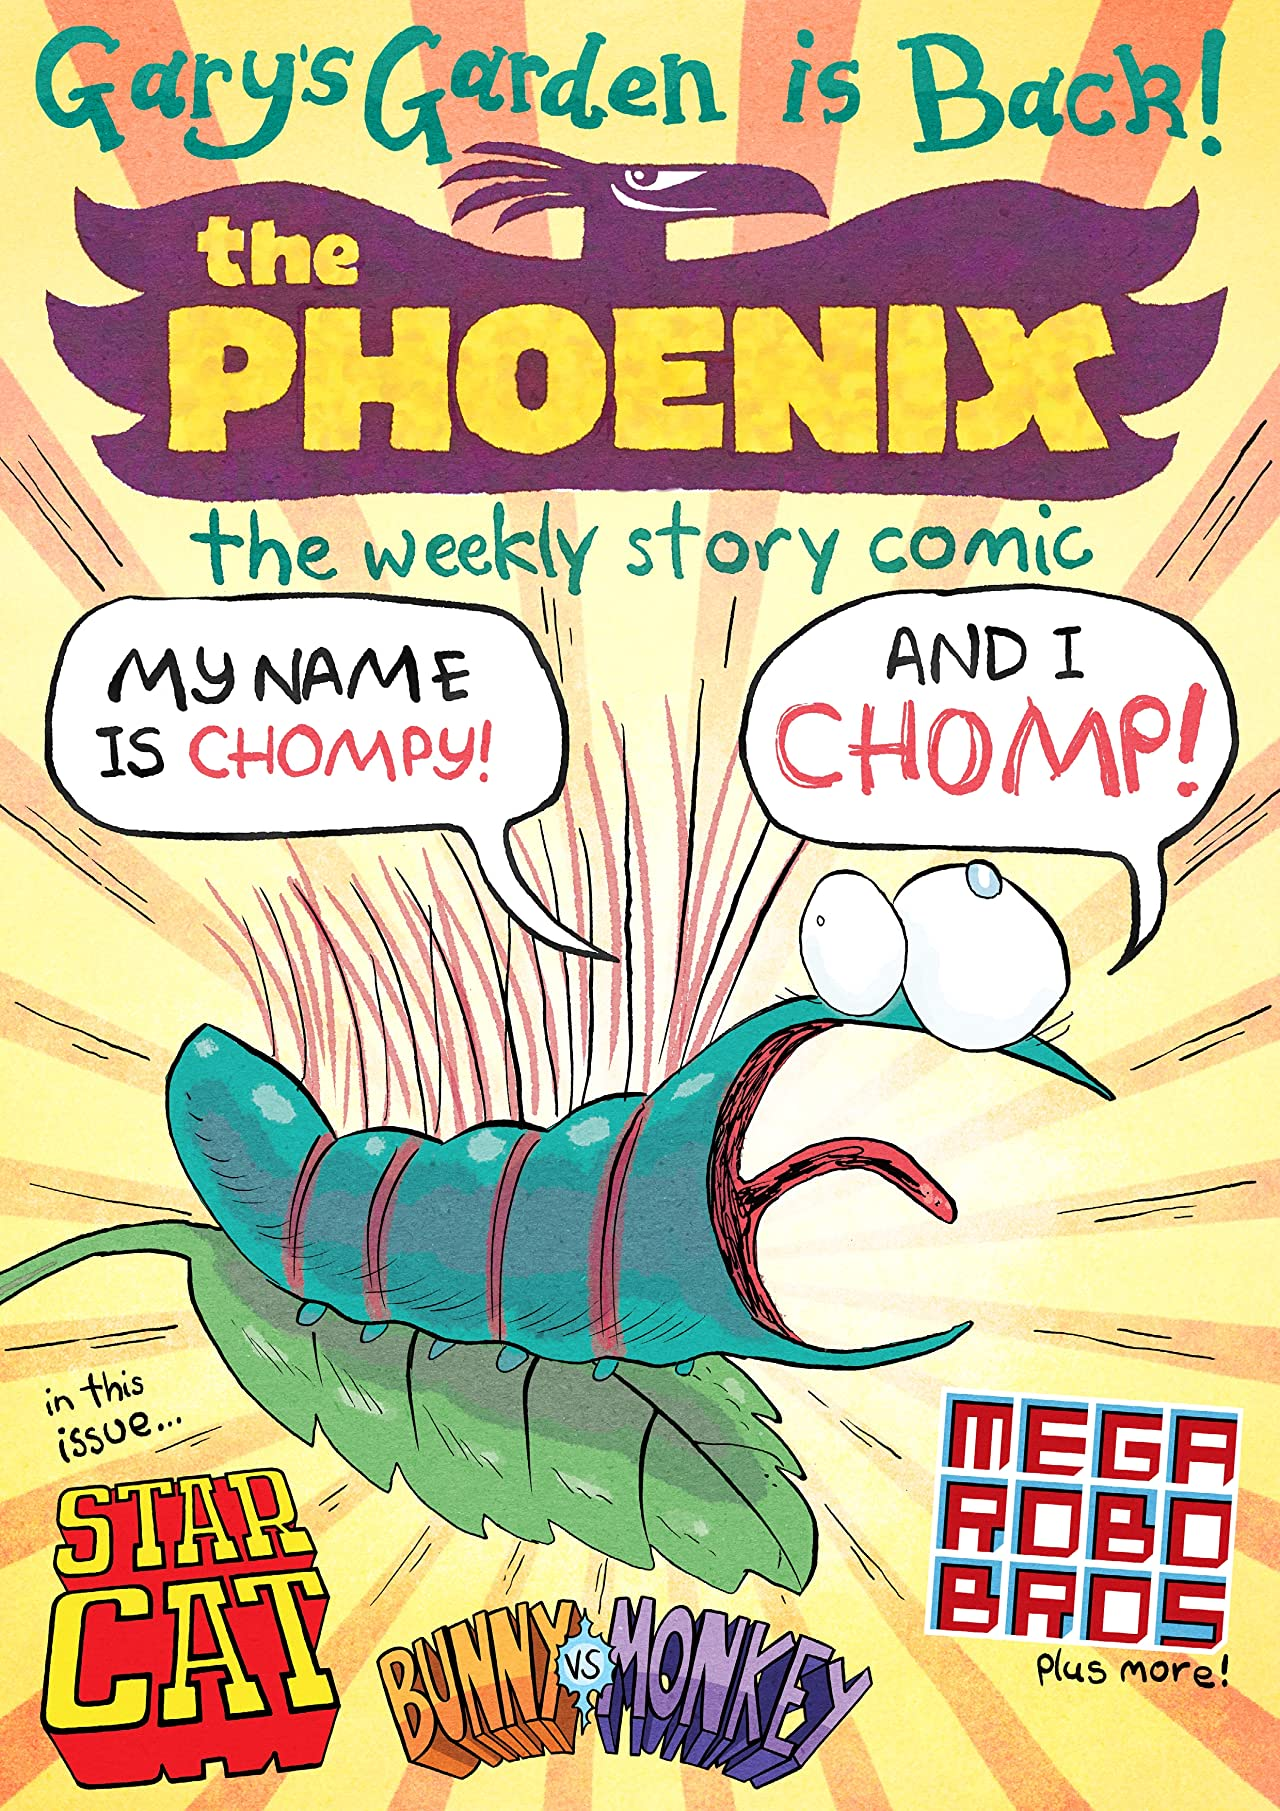 The Phoenix #245: The Weekly Story Comic